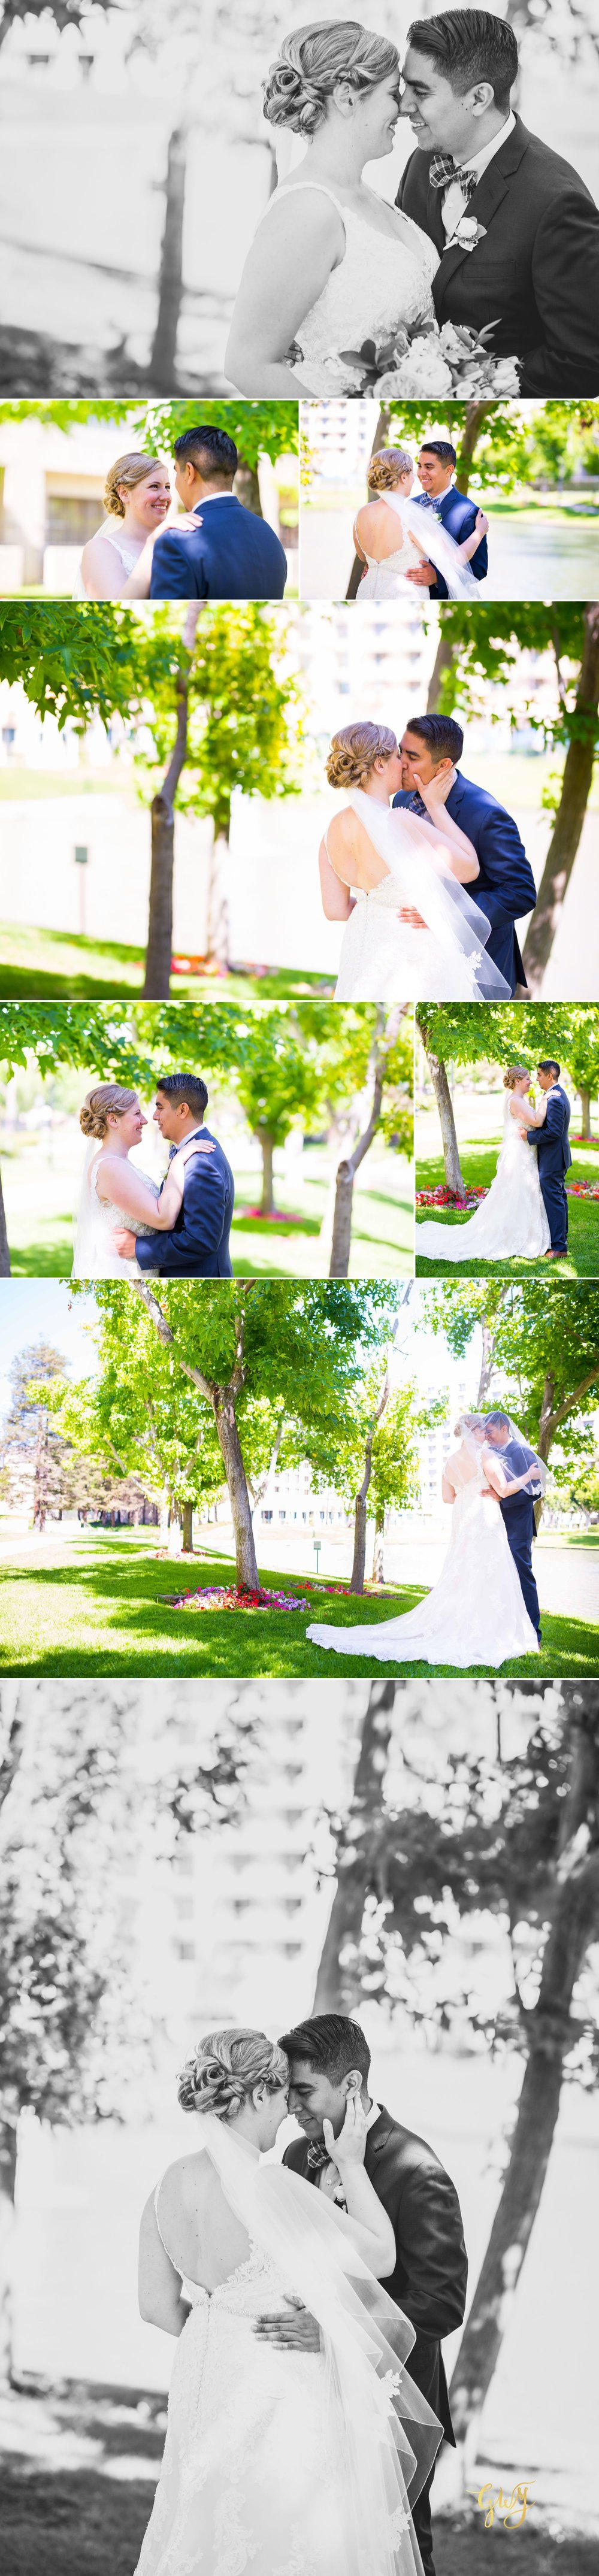 Javier + Kari Avenue of the Arts First Look Vintage Rose Wedding Ceremony Reception by Glass Woods Media 11.jpg